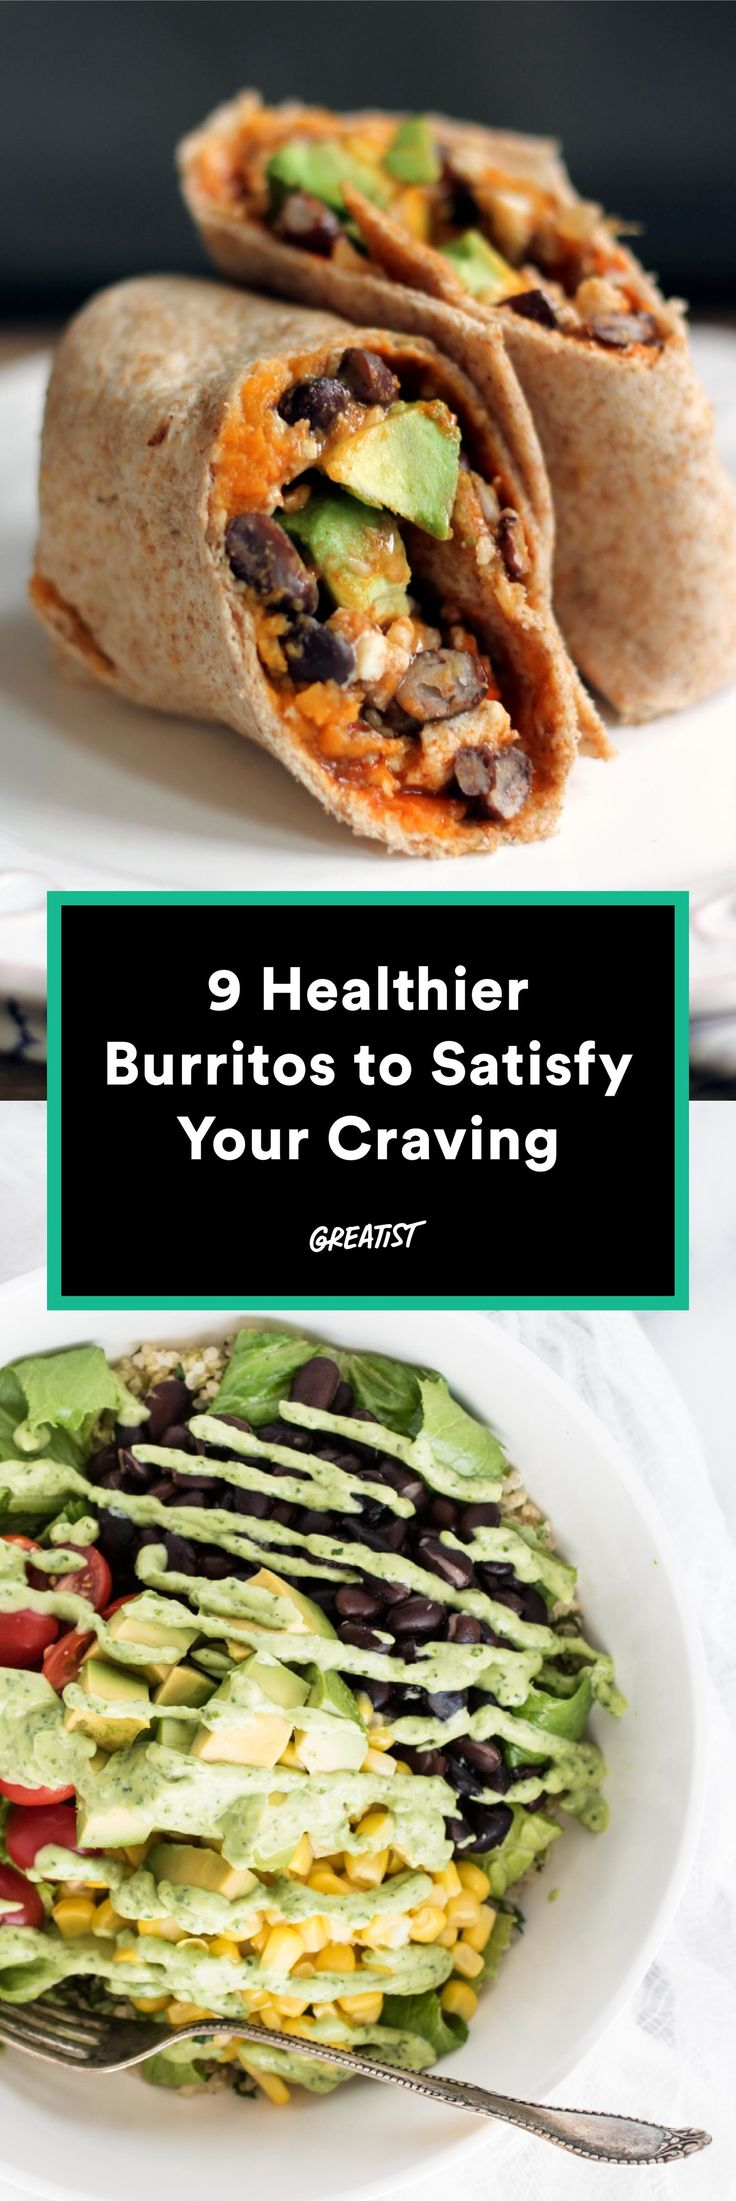 Think beyond the tortilla. #burrito #recipes http://greatist.com/eat/burrito-recipes-that-are-actually-healthy